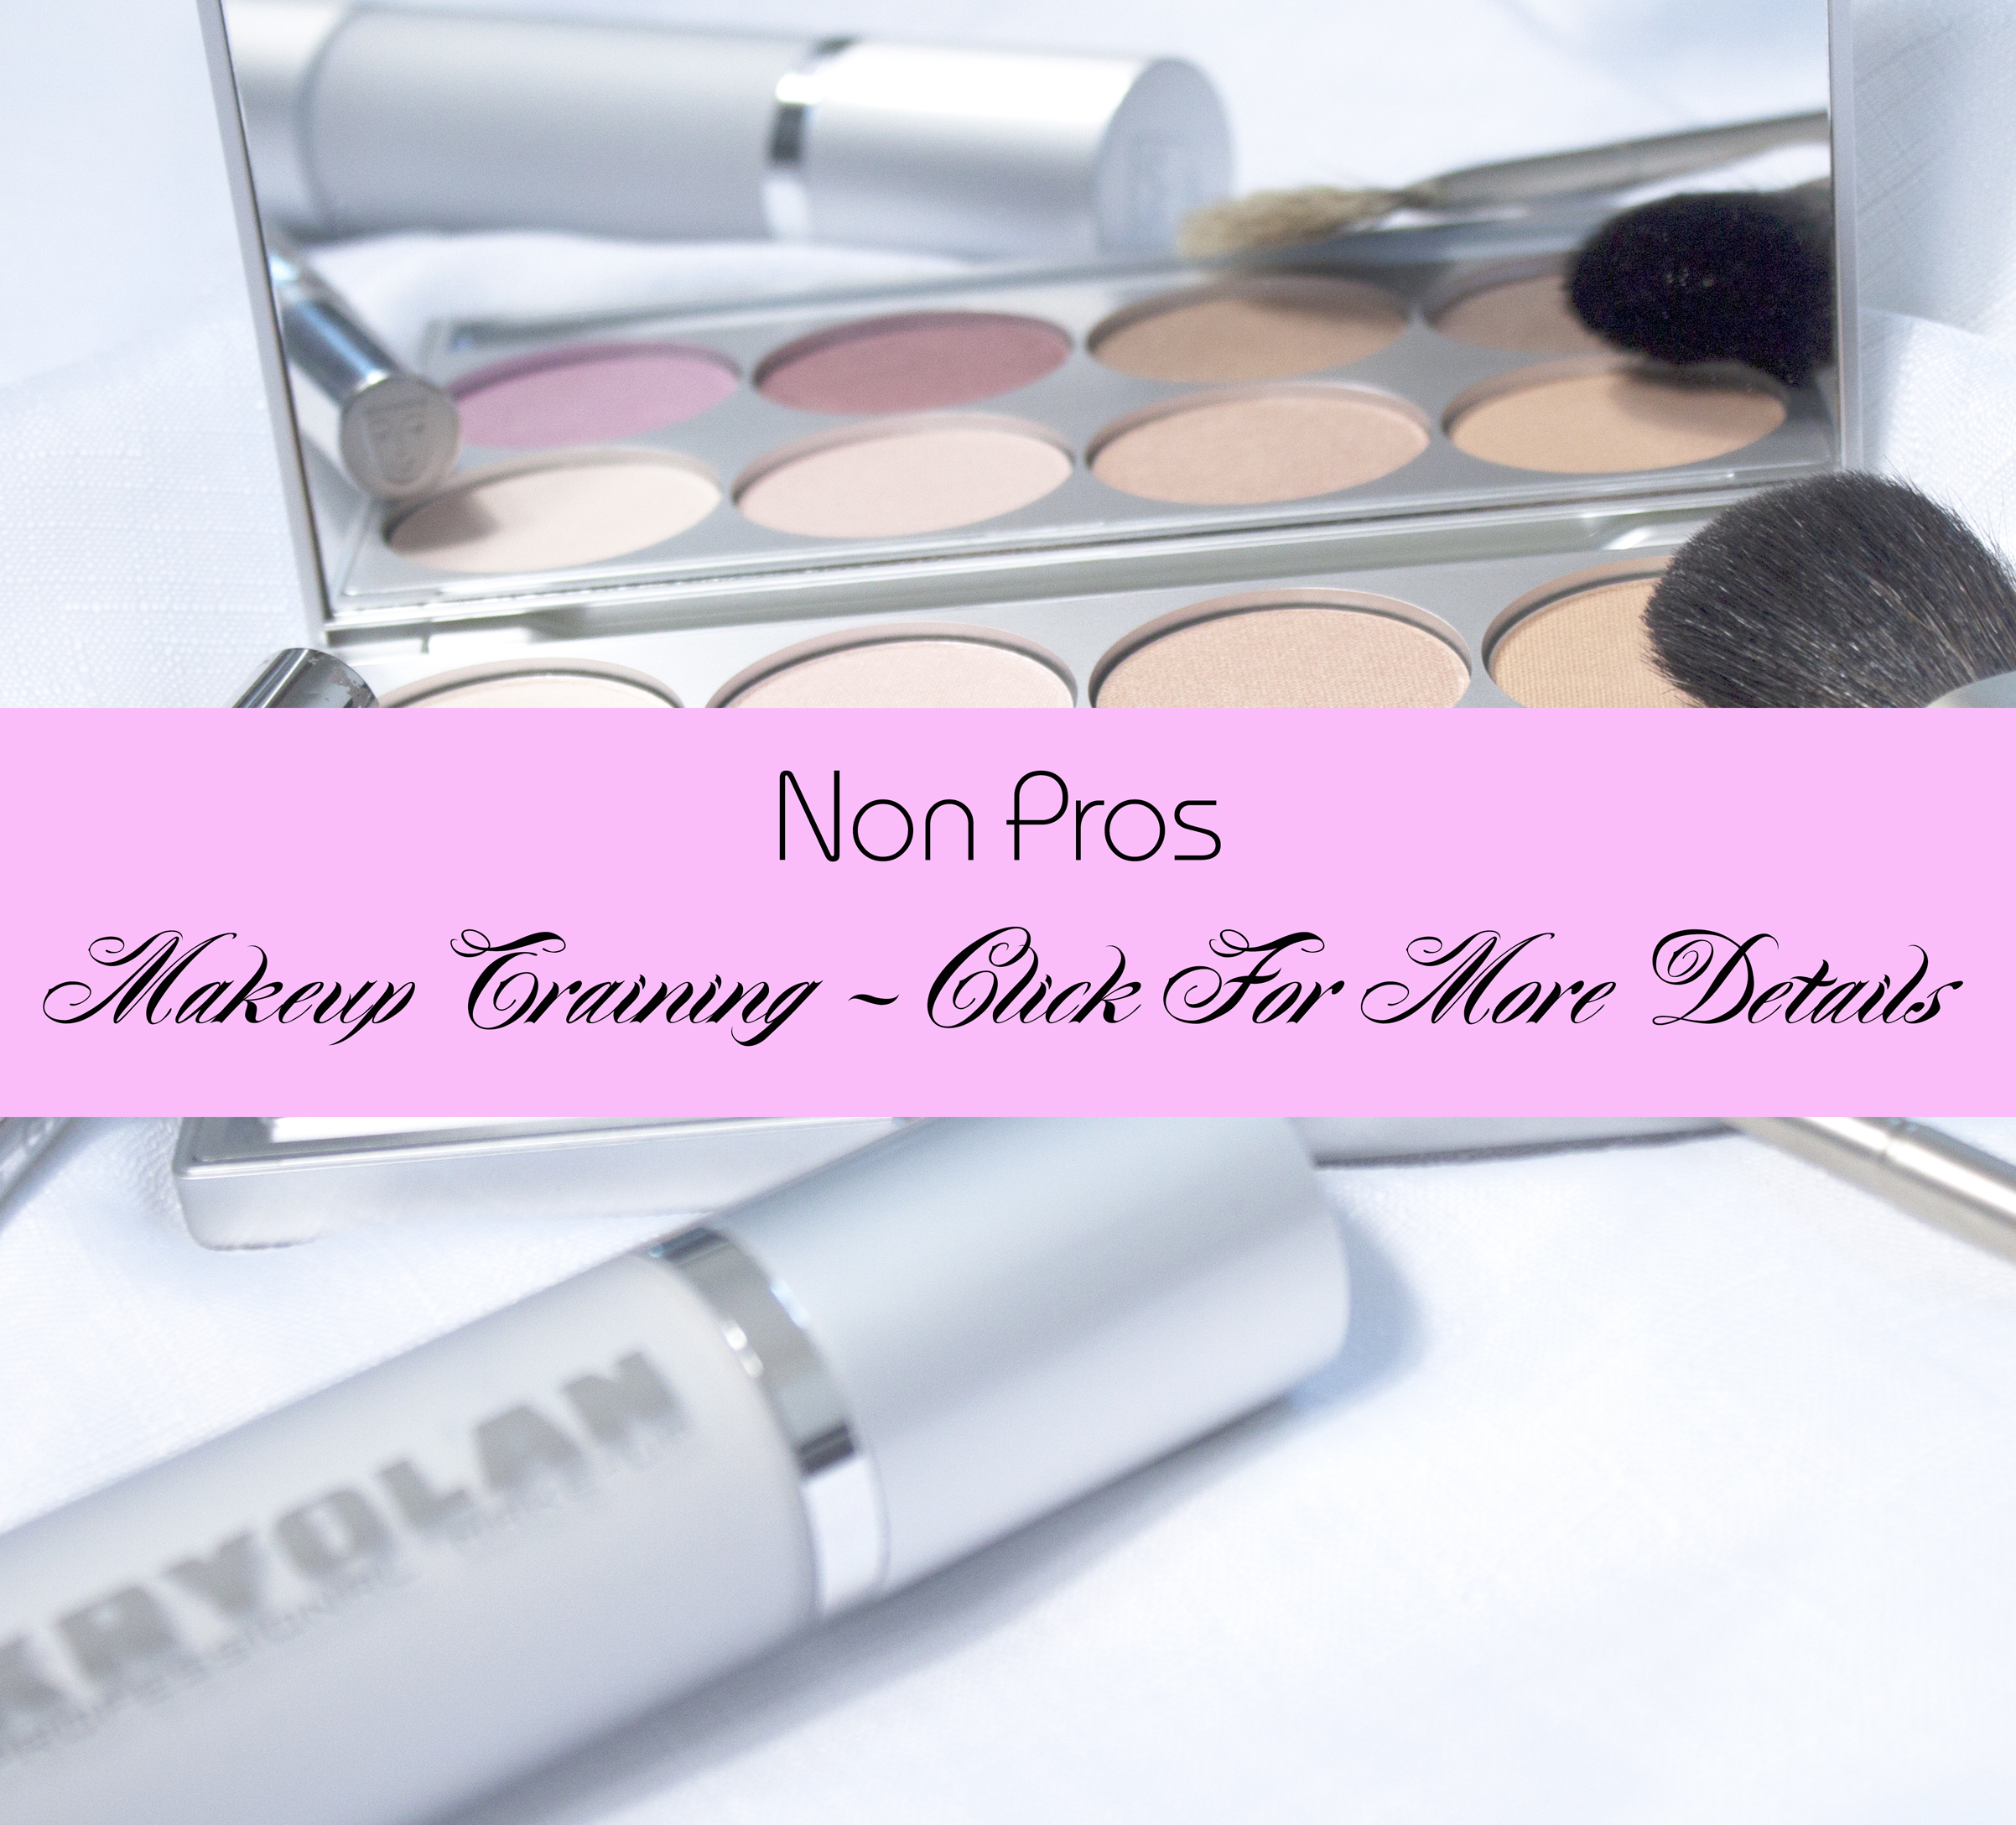 - My professional makeup training sessions cater to clients individual needs. Each session with me involves a make over with step by step guidance including a full breakdown of the look and all products used. Your look and products are all noted down on a professional Pro Chart which you will keep.